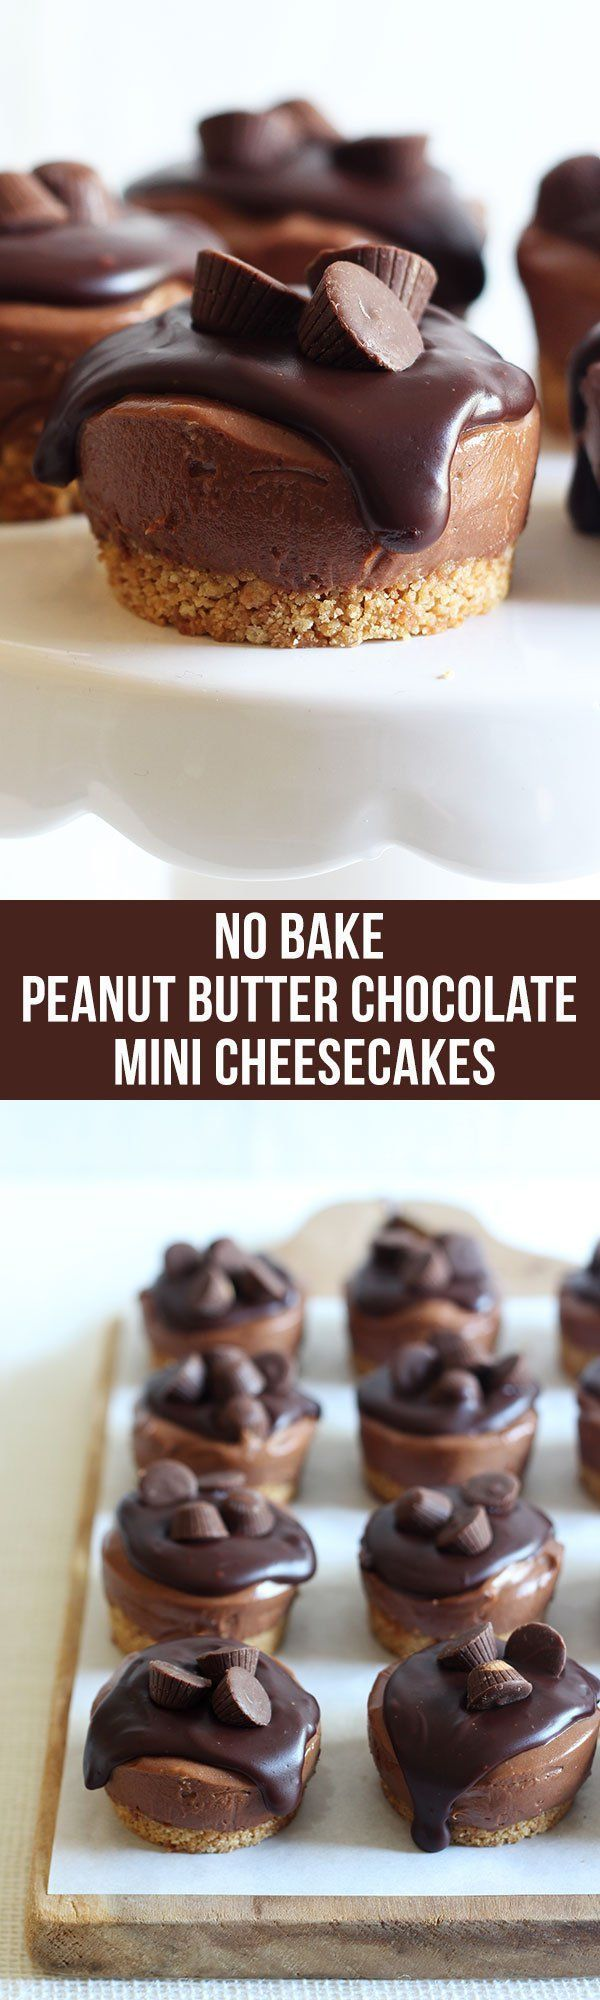 Perfect for you you don't wanna or can't use the oven! These were the best no bake cheesecakes I've ever had! No Bake Mini Peanut Butter Cheesecakes have a crunchy graham cracker crust, ultra rich and creamy chocolate peanut butter cheesecake filling, and are topped with chocolate ganache and mini peanut butter cups.